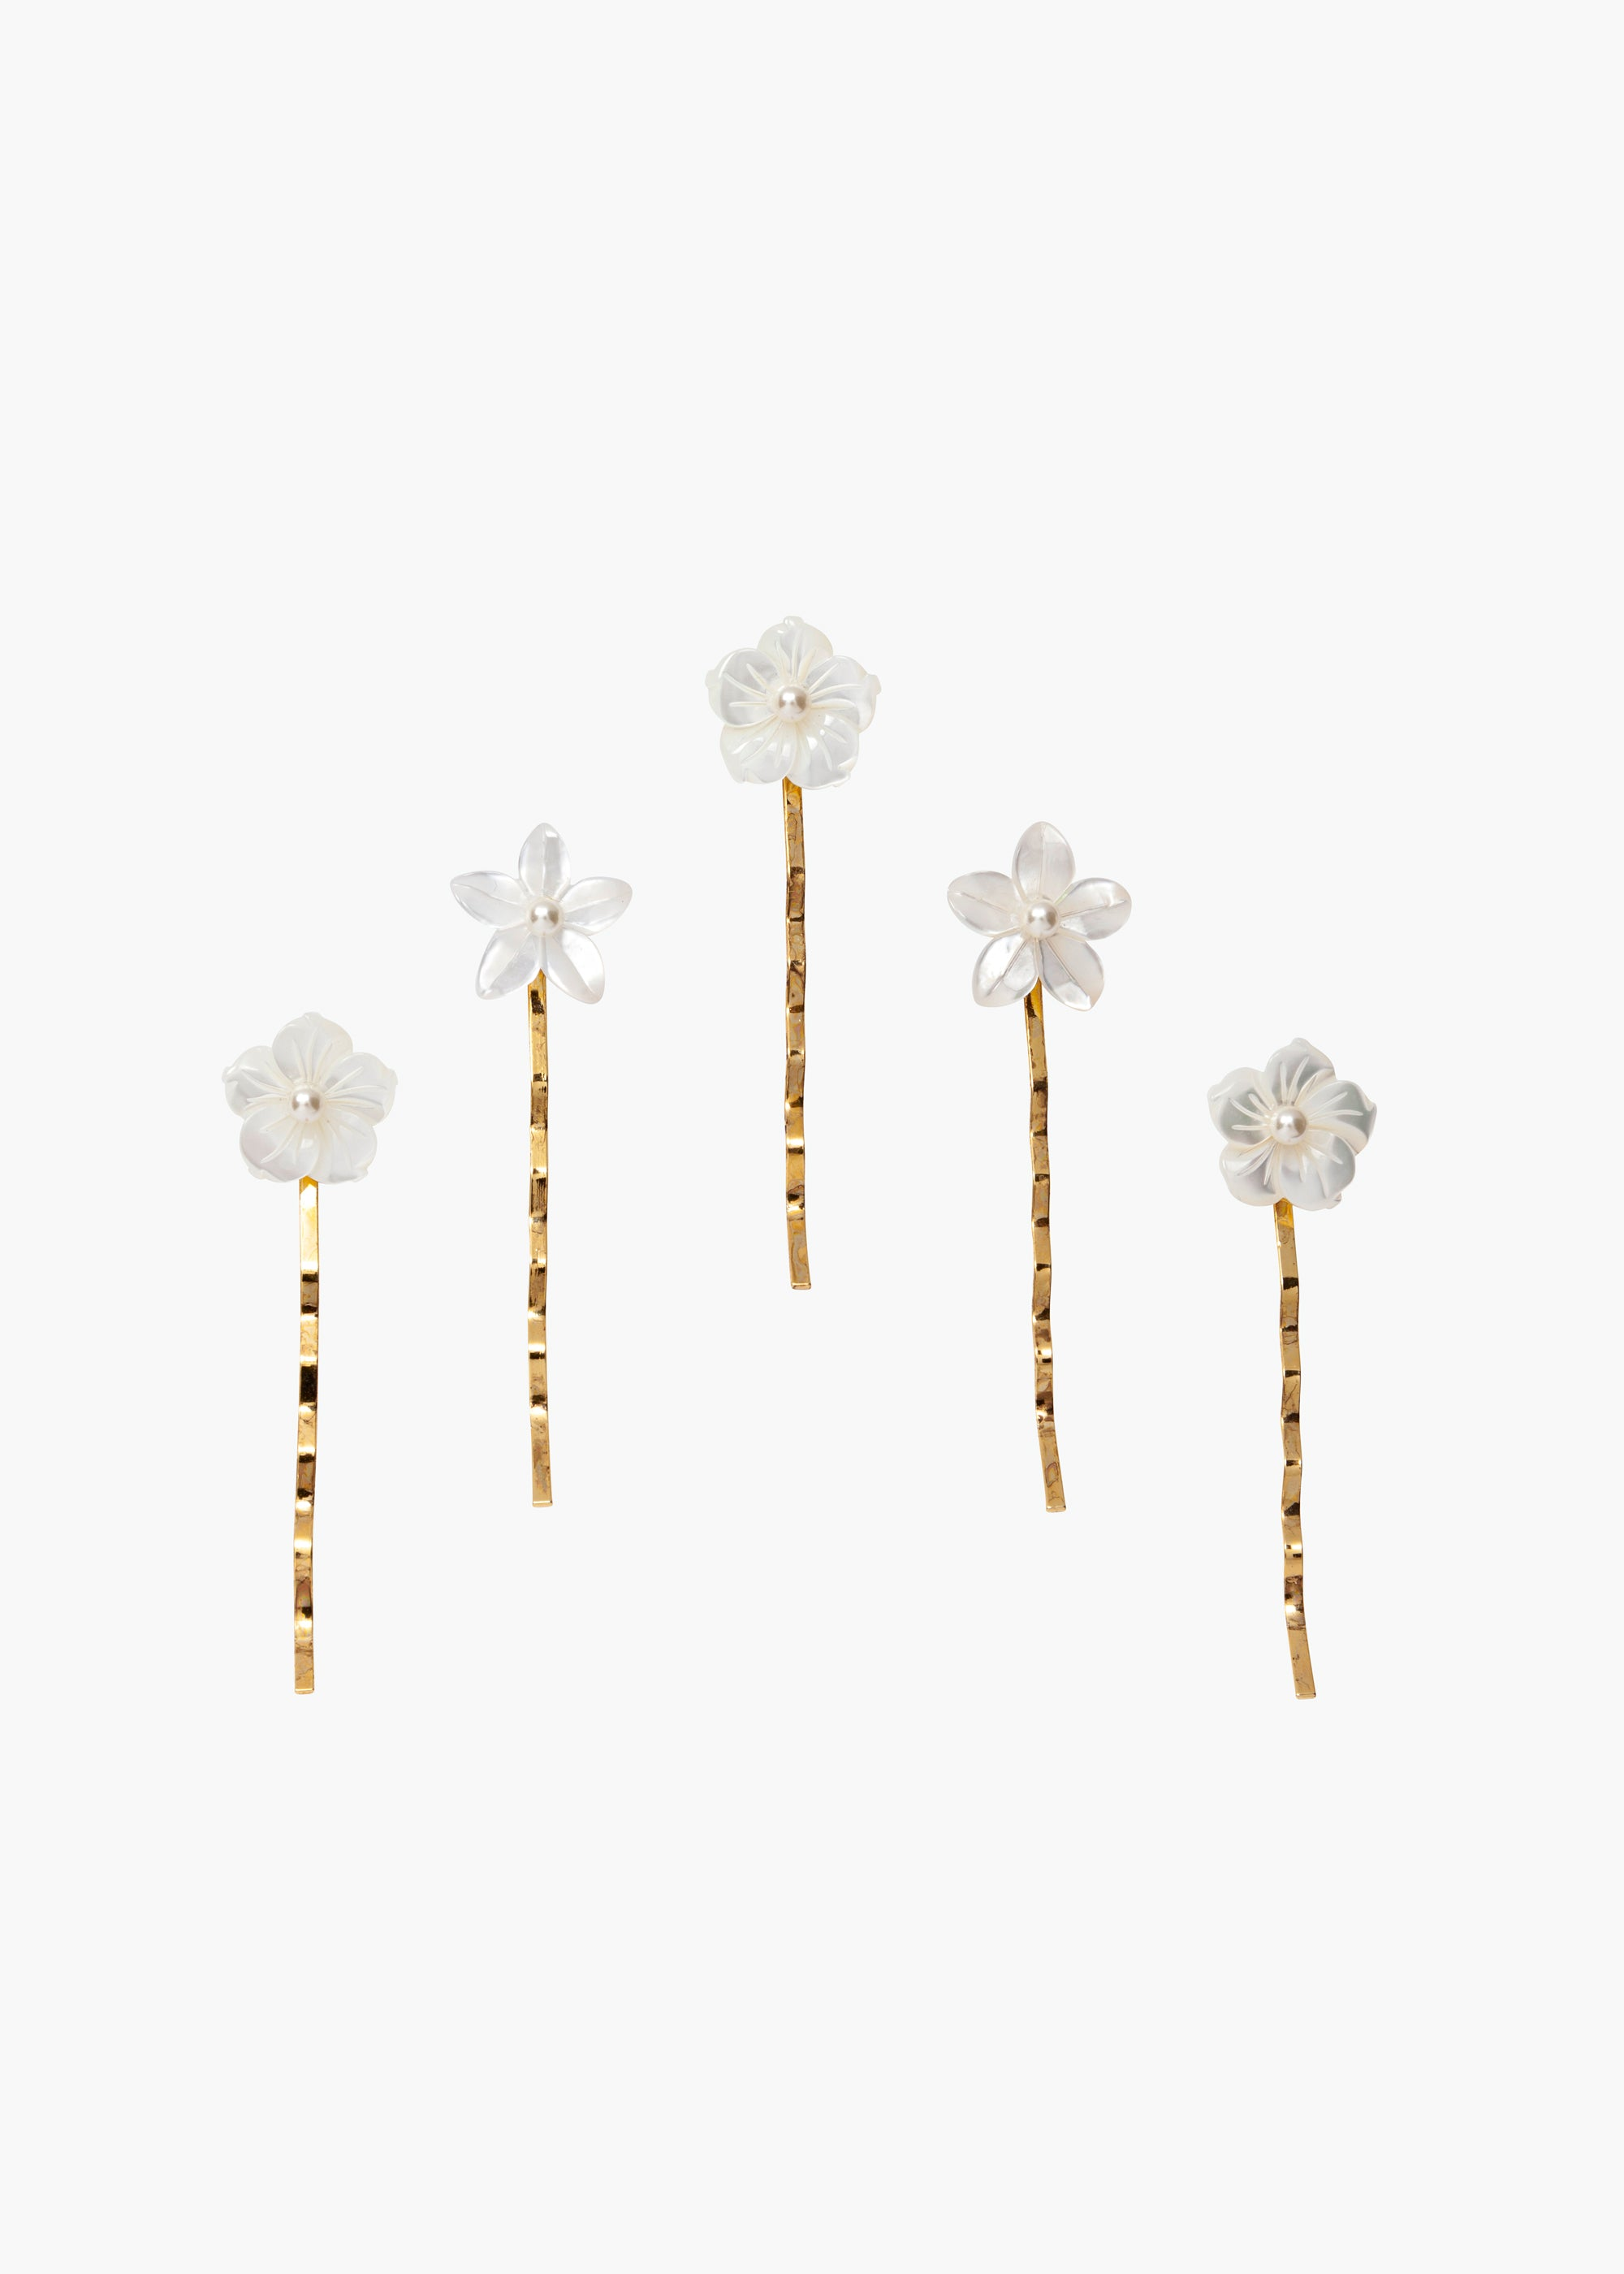 Marika Bobby Pin Set of 5